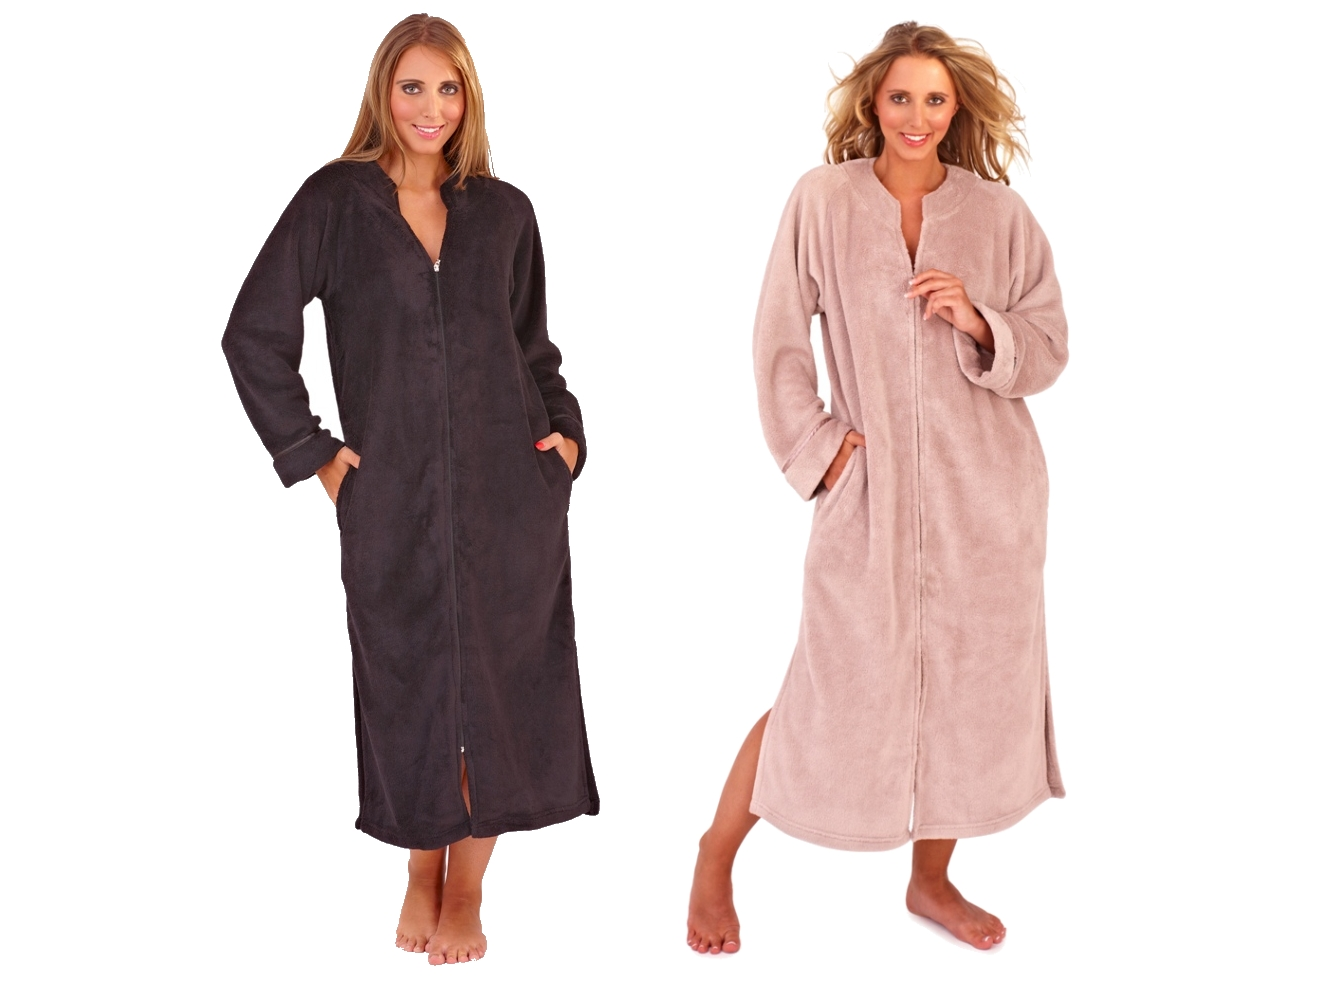 Ladies dressing gown bath robe zip up fleece house coat | eBay